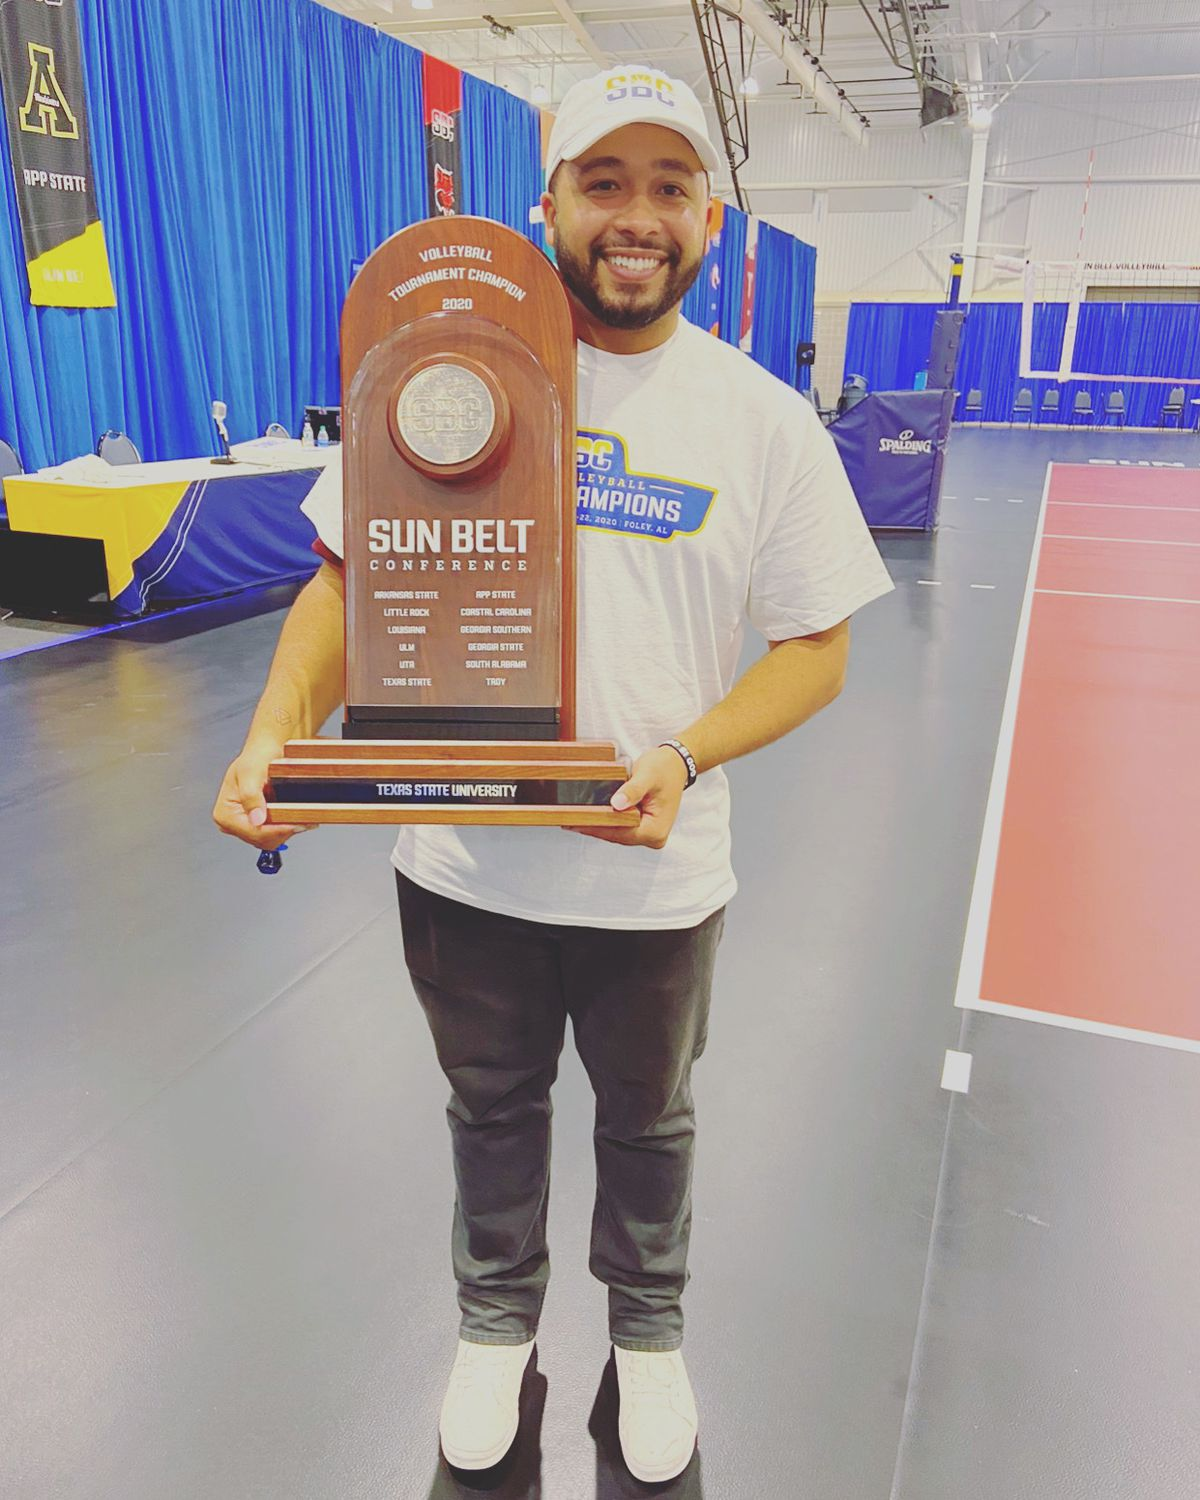 Keith Anderson with the Sun Belt trophy won by the Texas State volleyball team.